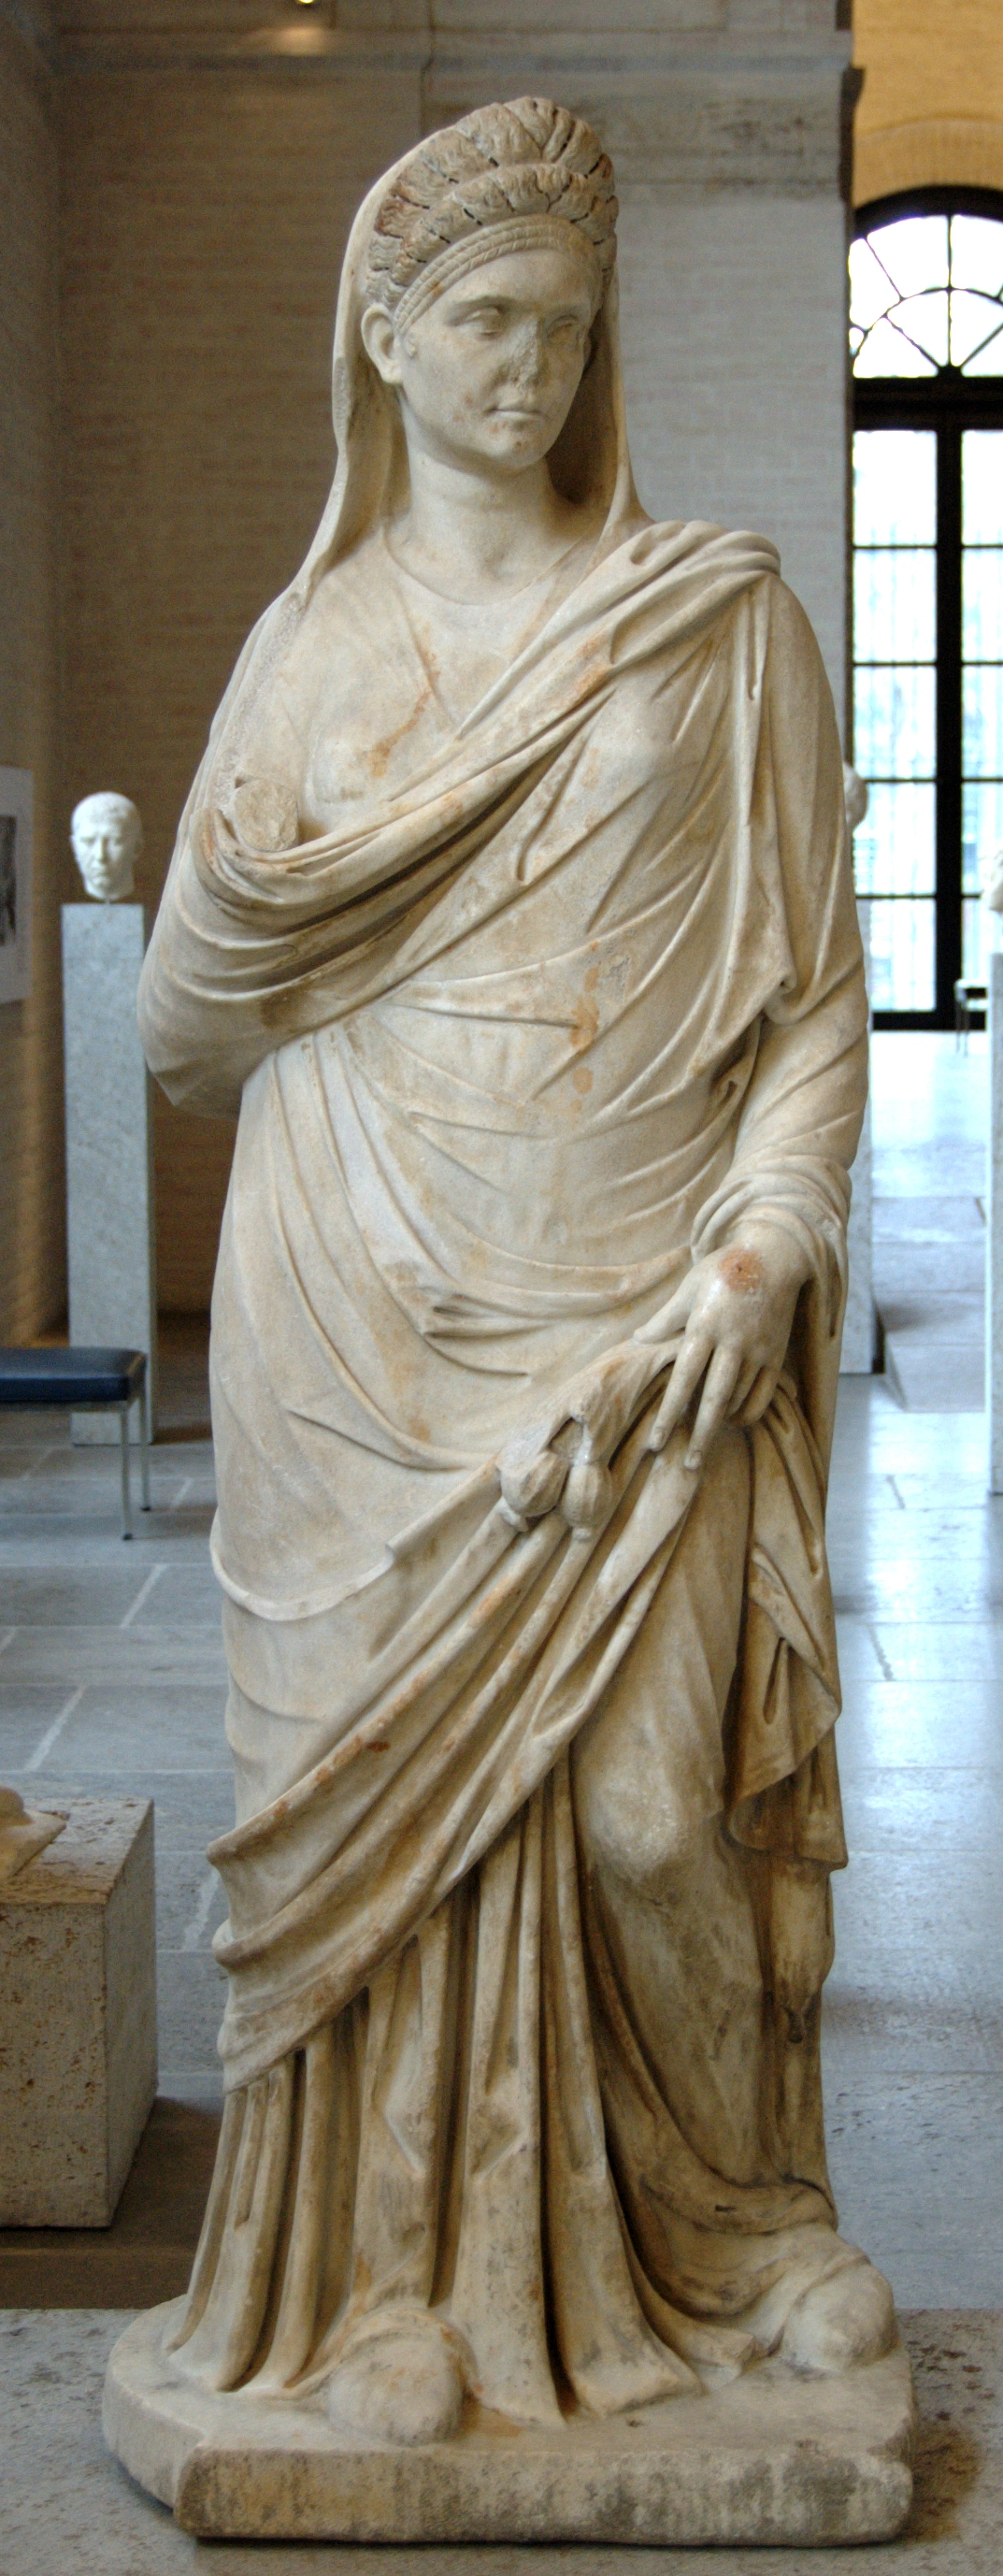 Ancient Roman Women: A Look at Their Lives